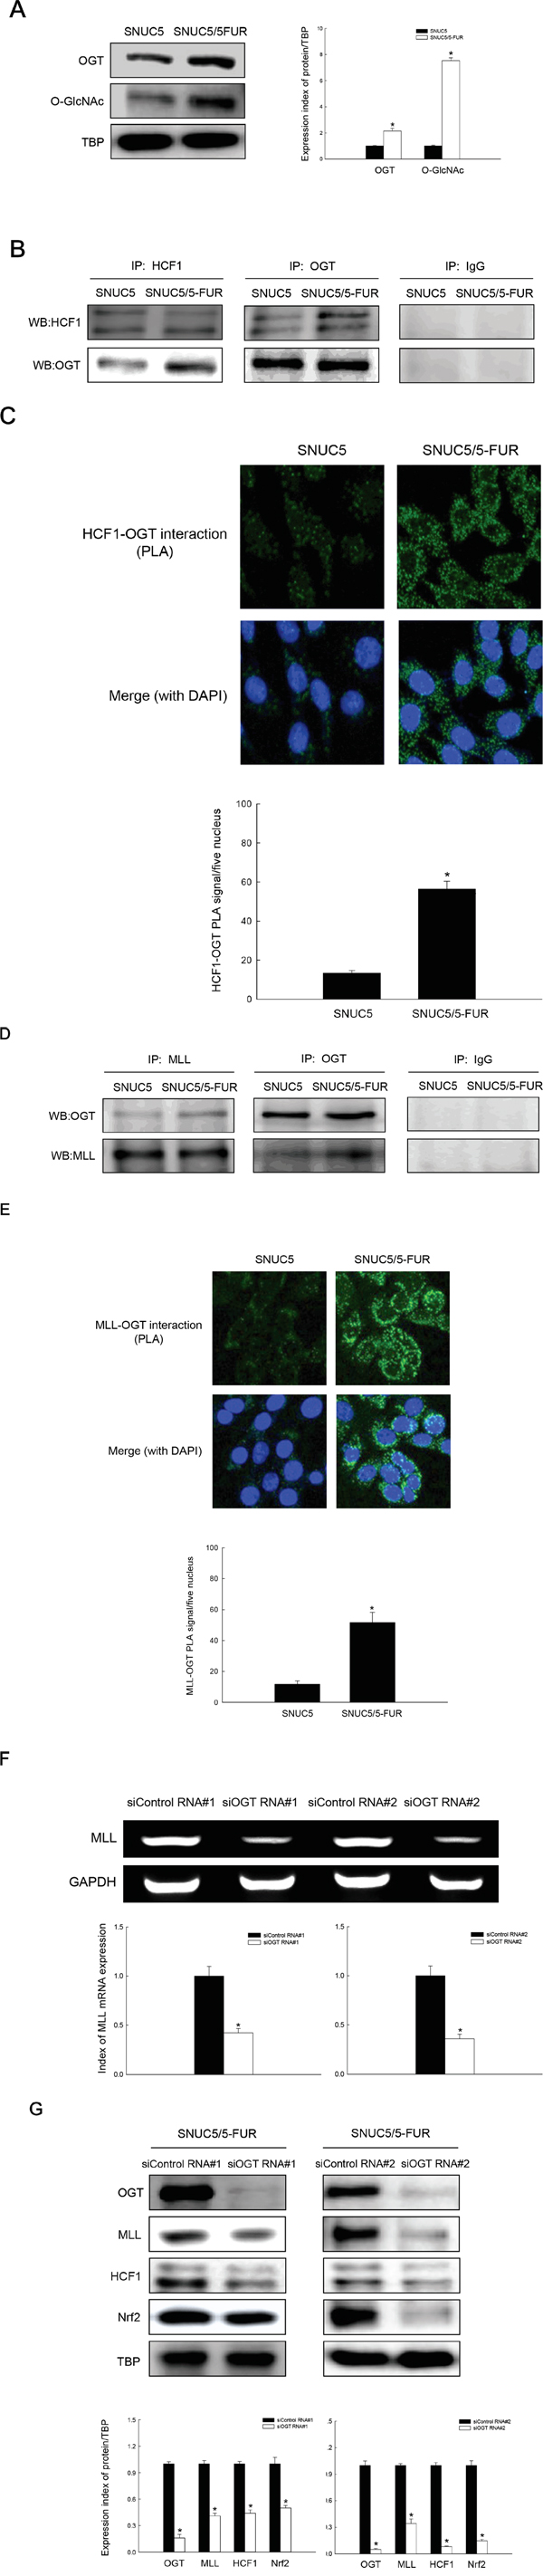 Involvement of OGT in histone methylase MLL/COMPASS-like complex-mediated Nrf2 expression in SNUC5/5-FUR cells.